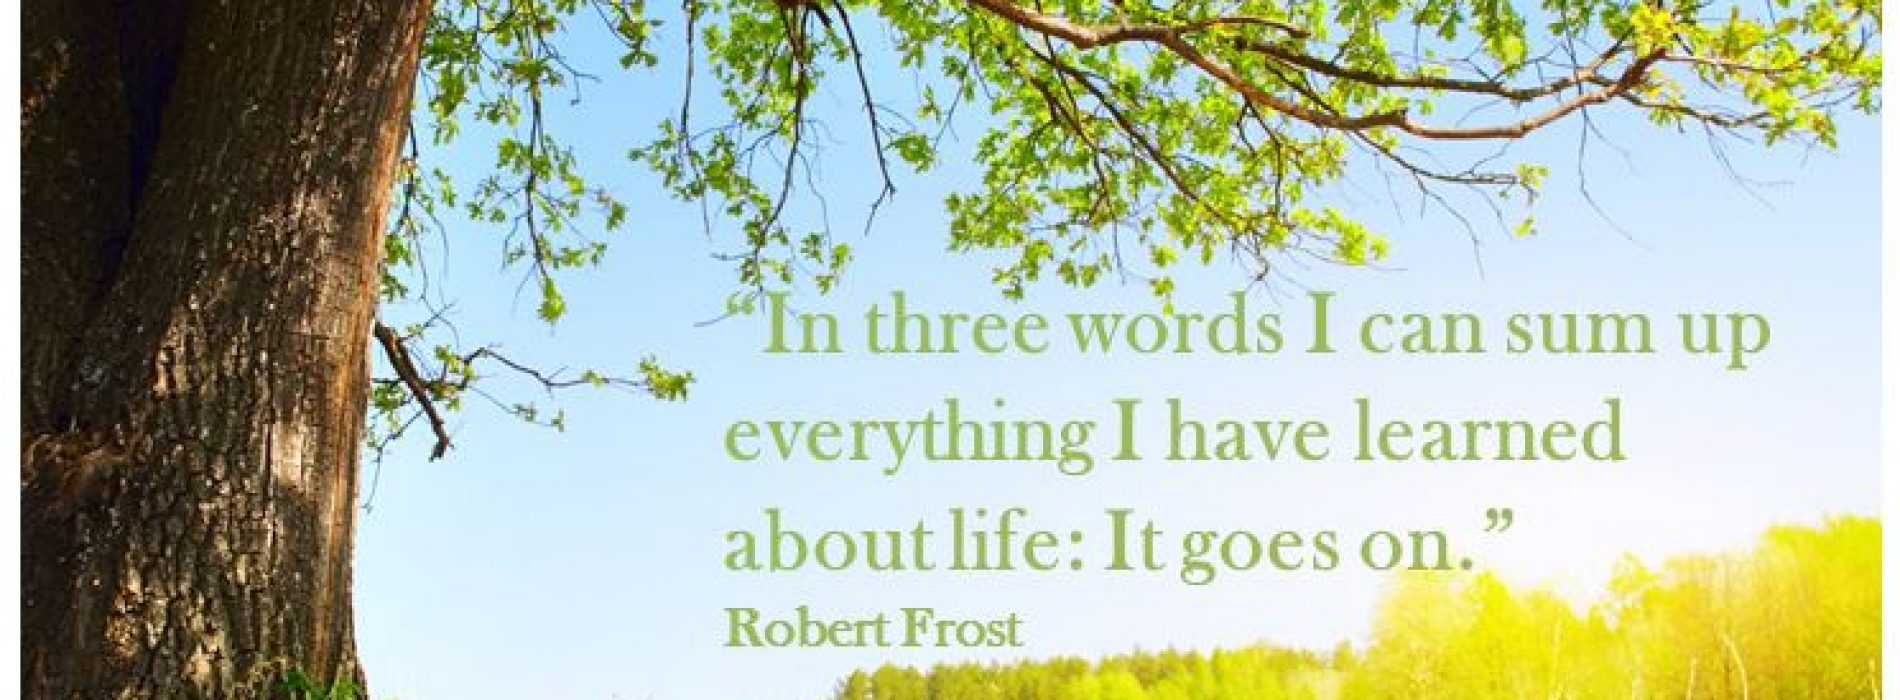 """In three words I can sum up everything I have learned about life: It goes on."""